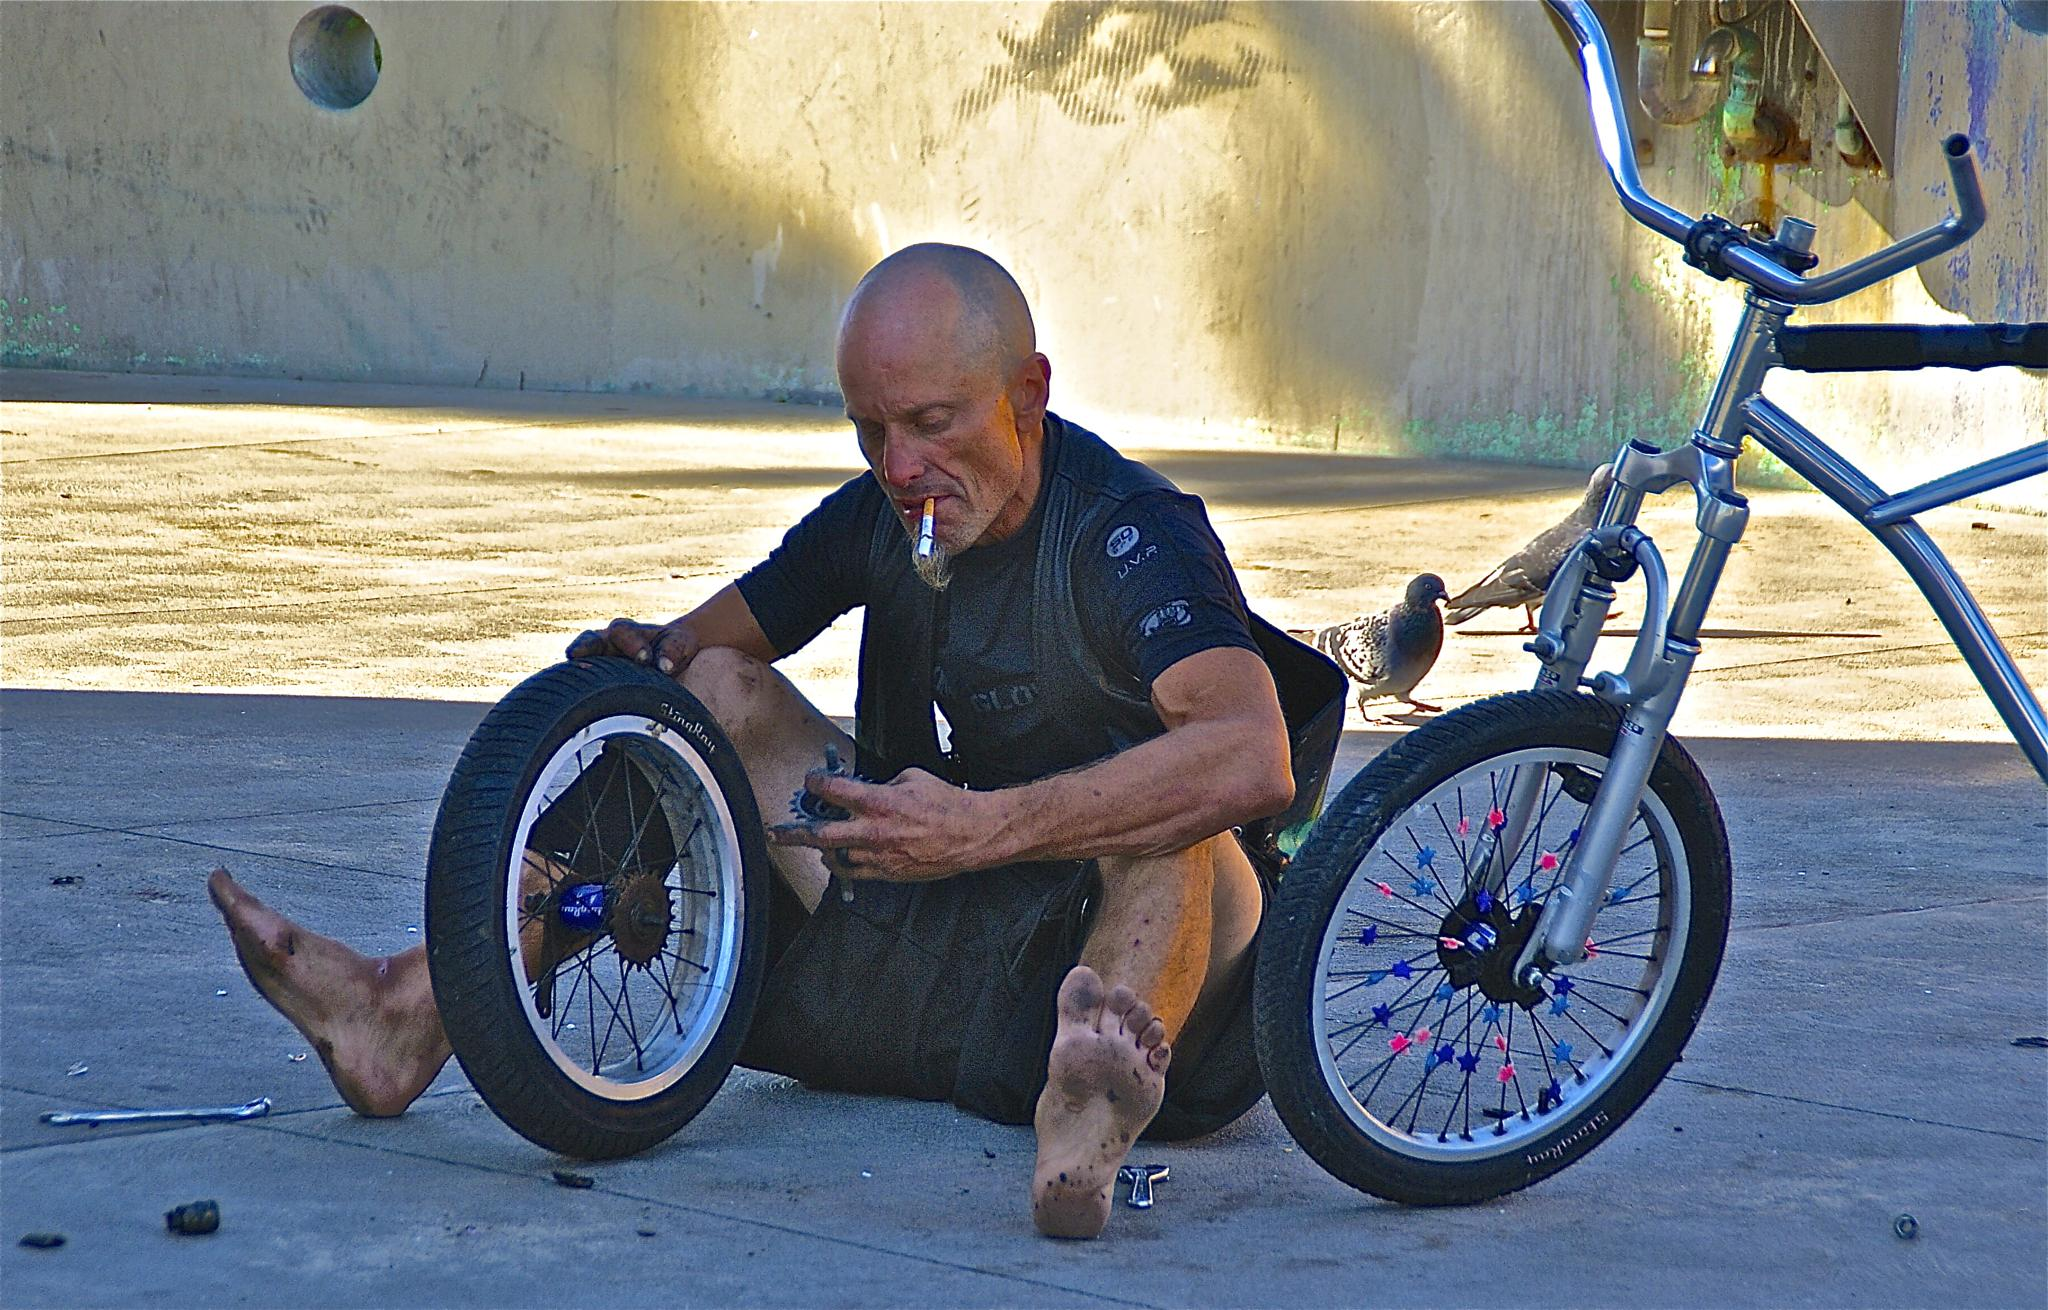 Bicycle Repairman by Gibby911